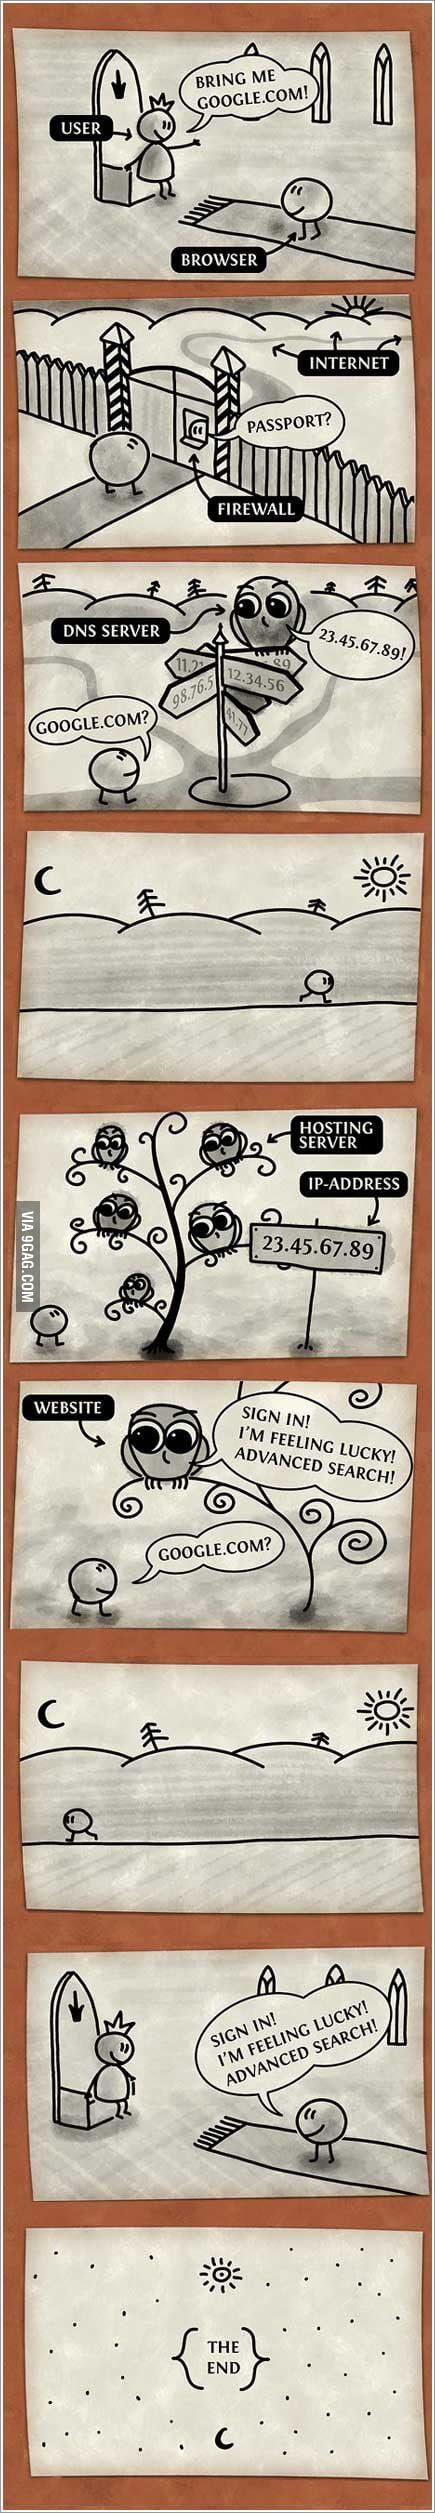 How a browser works